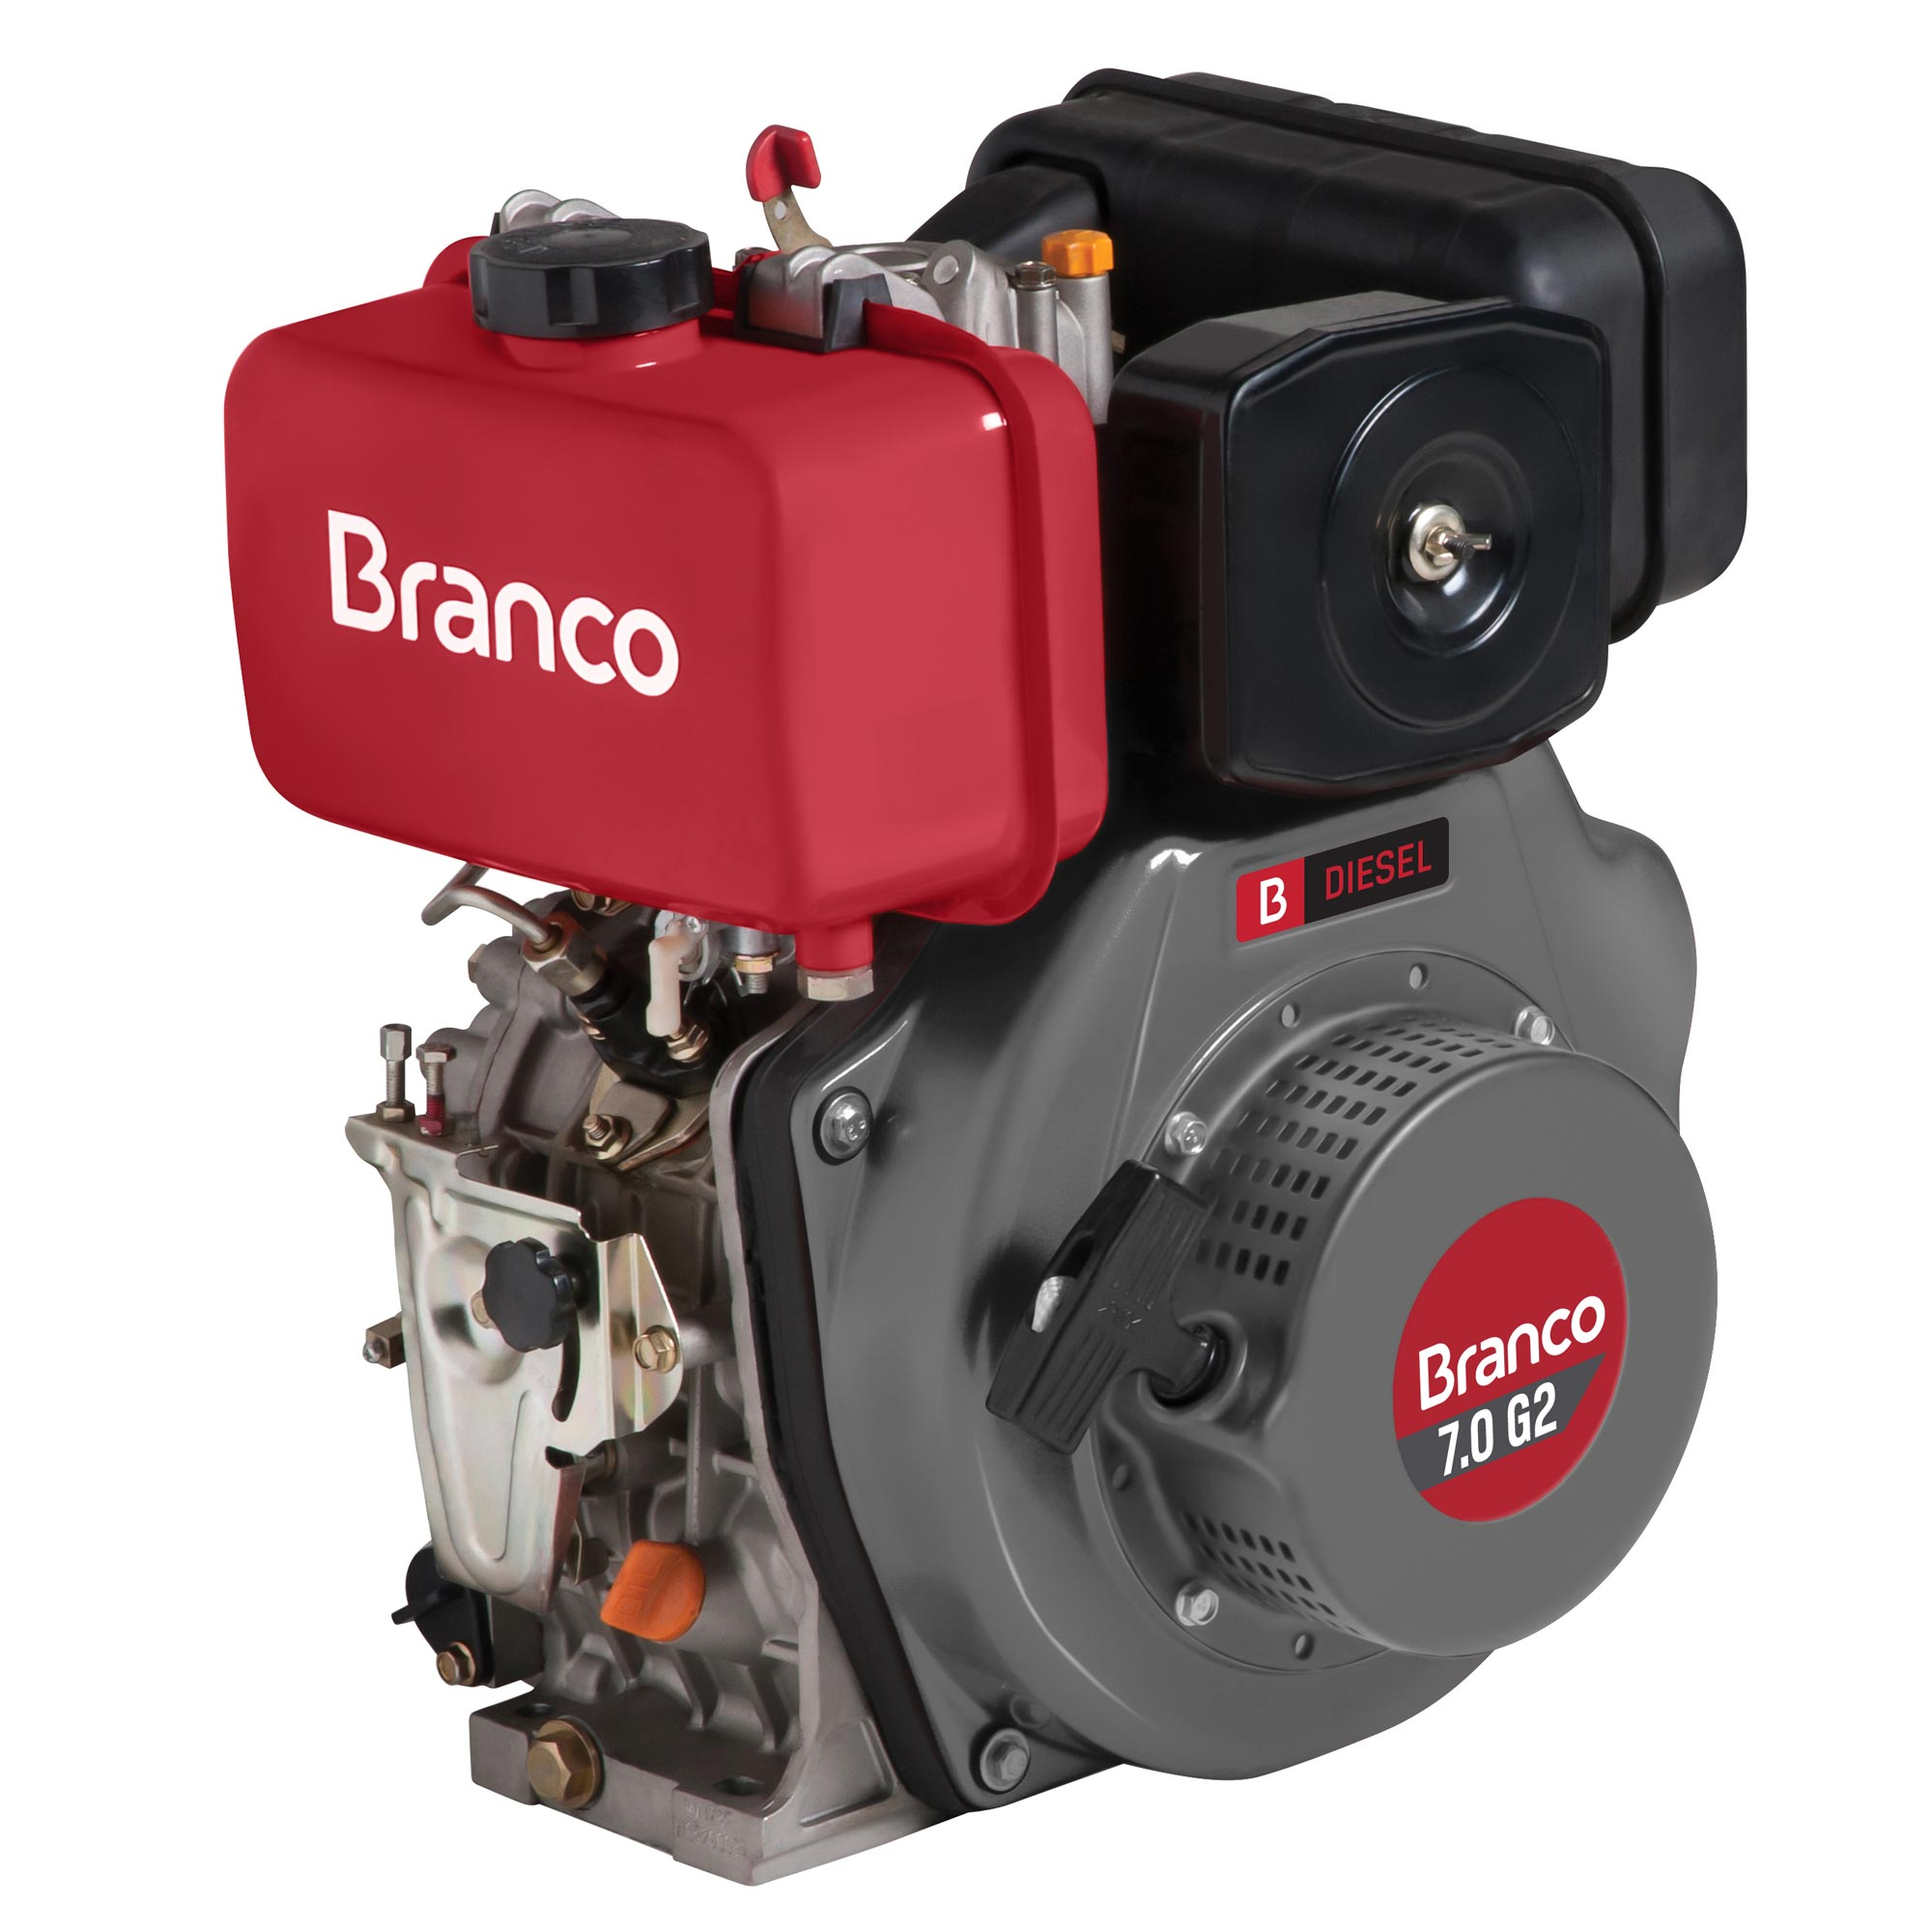 Motor Branco 7,0 hp - G2 (Manual)